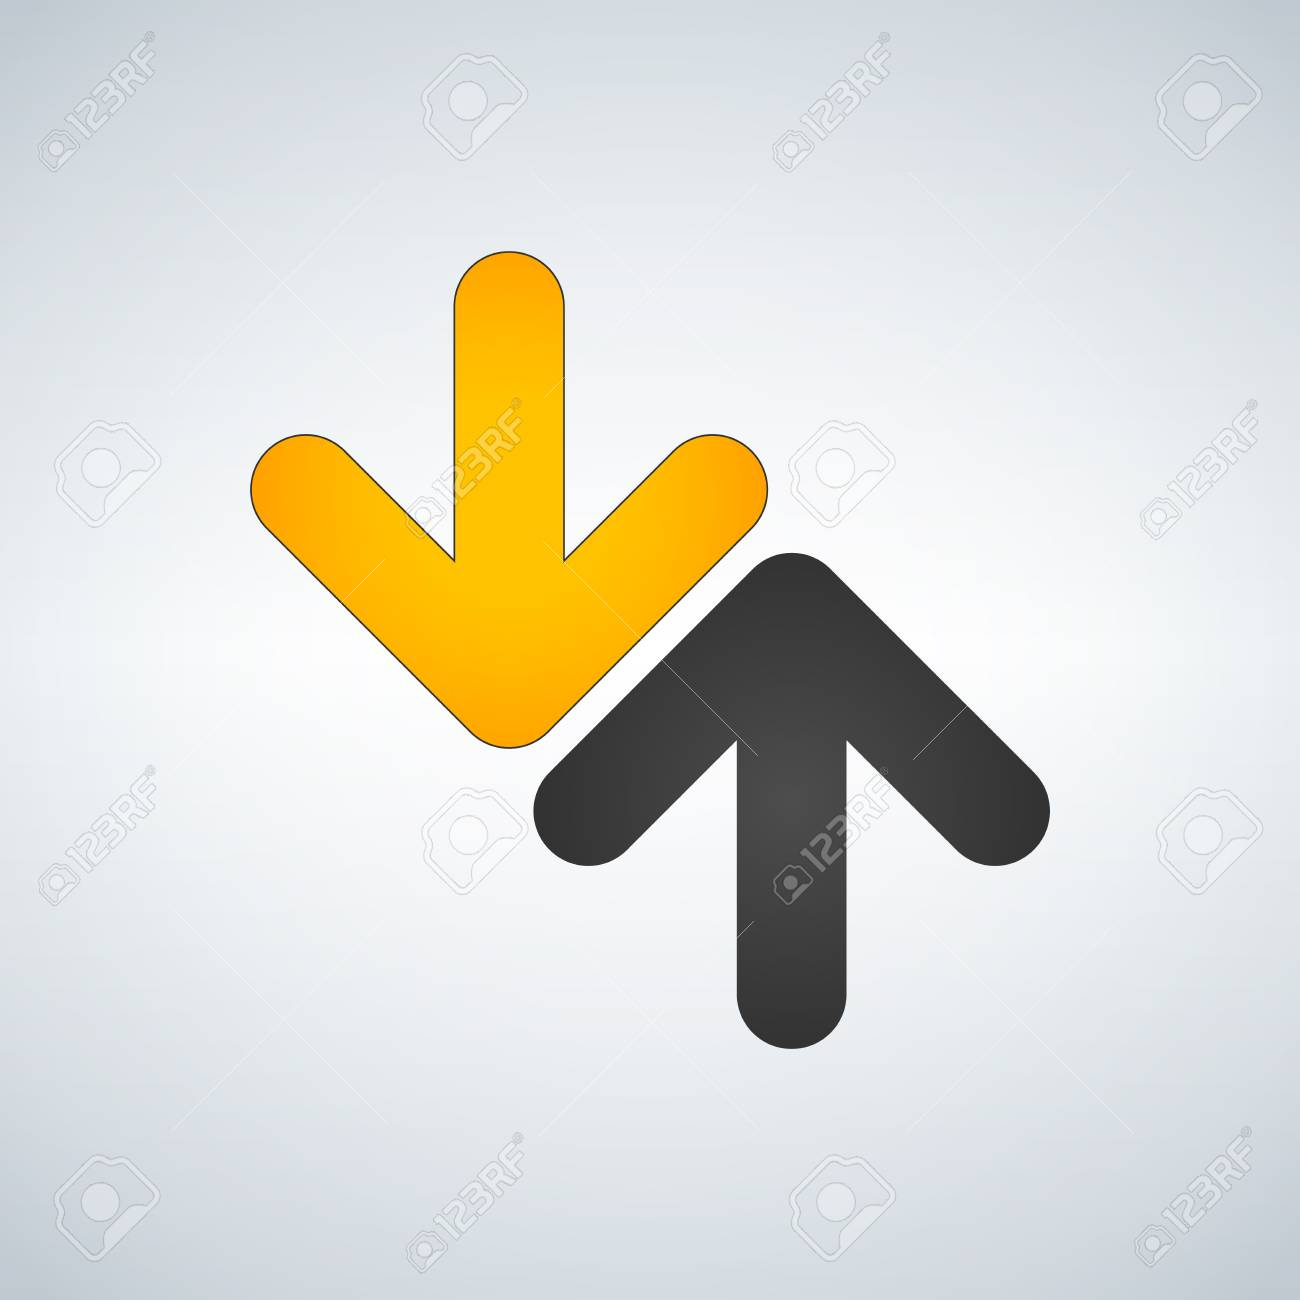 Grey up and yellow down arrow icon on light background royalty free grey up and yellow down arrow icon on light background stock vector 90364651 buycottarizona Choice Image